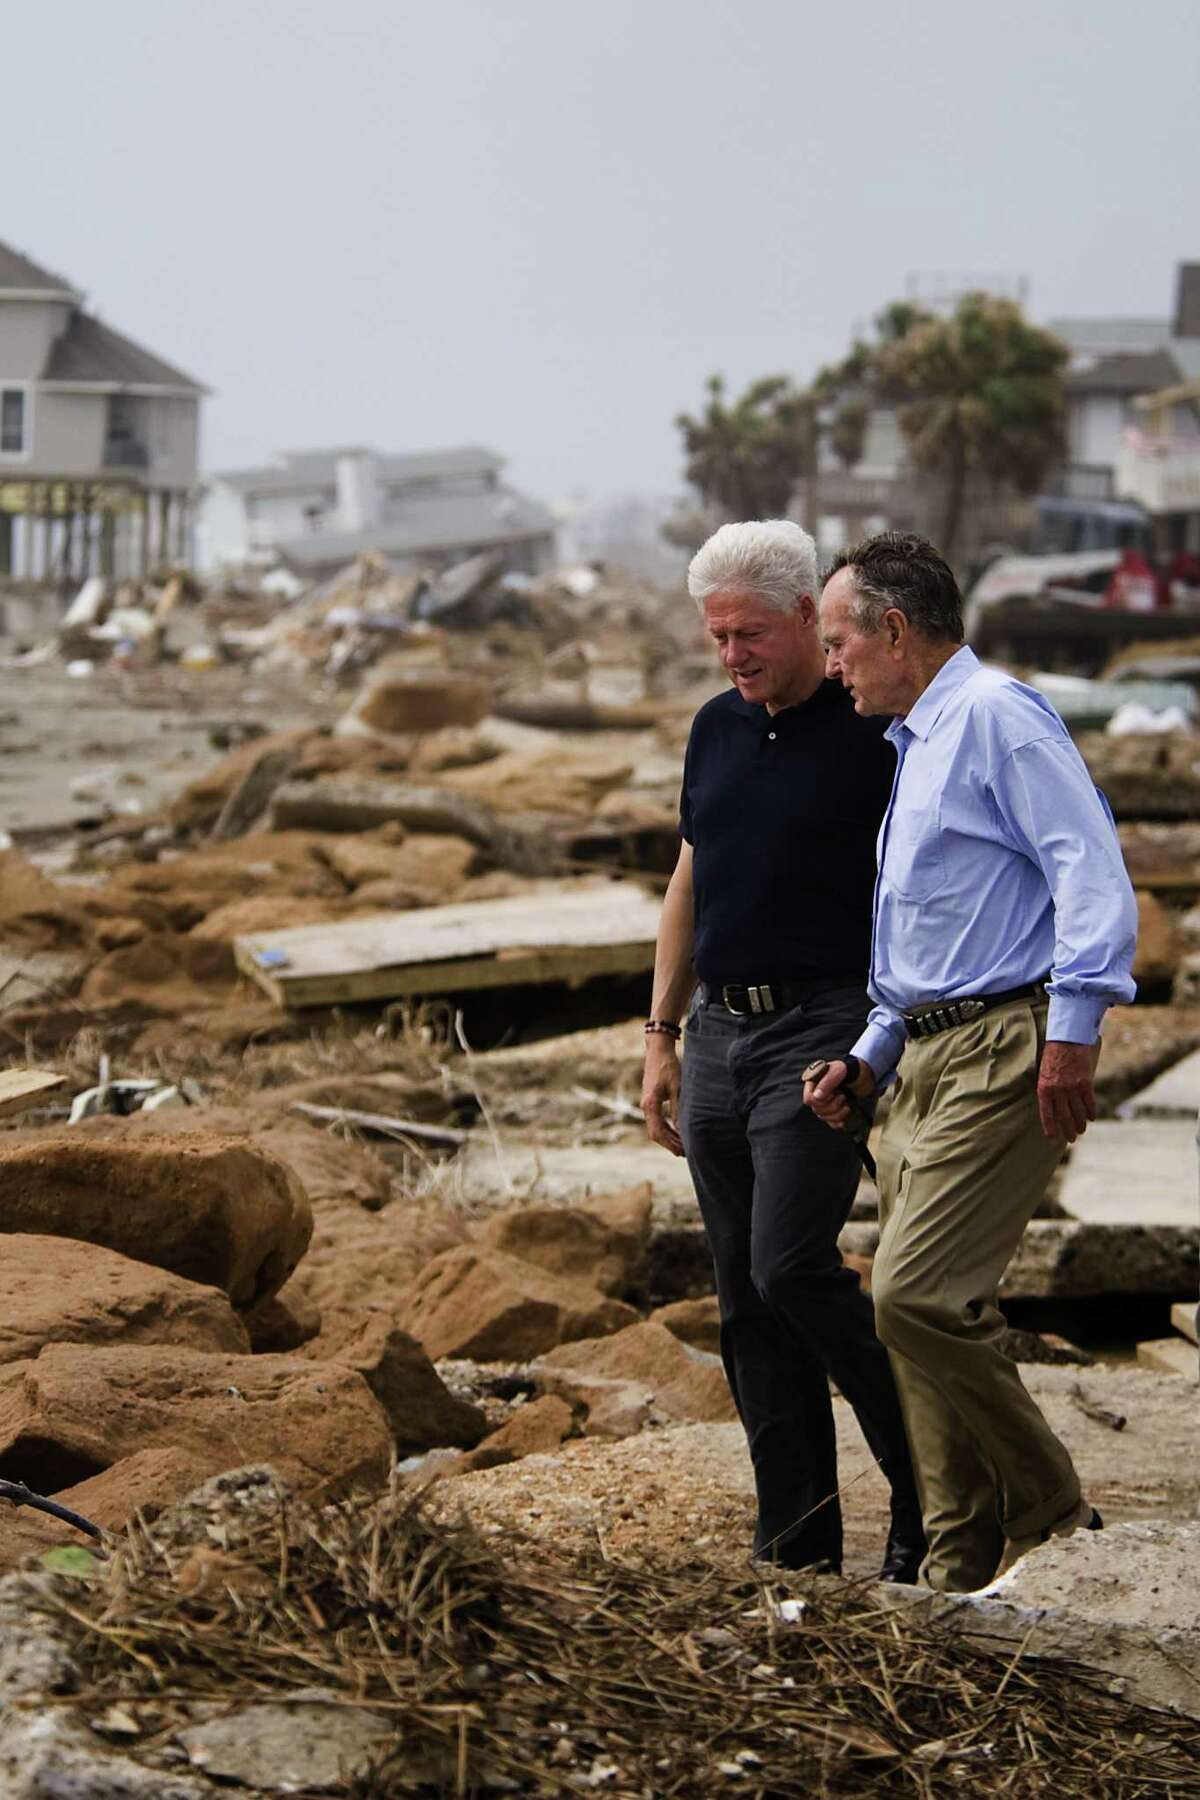 Former U.S. Presidents George H.W. Bush, right, and Bill Clinton walk through debris at Bermuda Beach on Galveston Island as they toured areas affected by Hurricane Ike in this photo from Oct. 14, 2008.